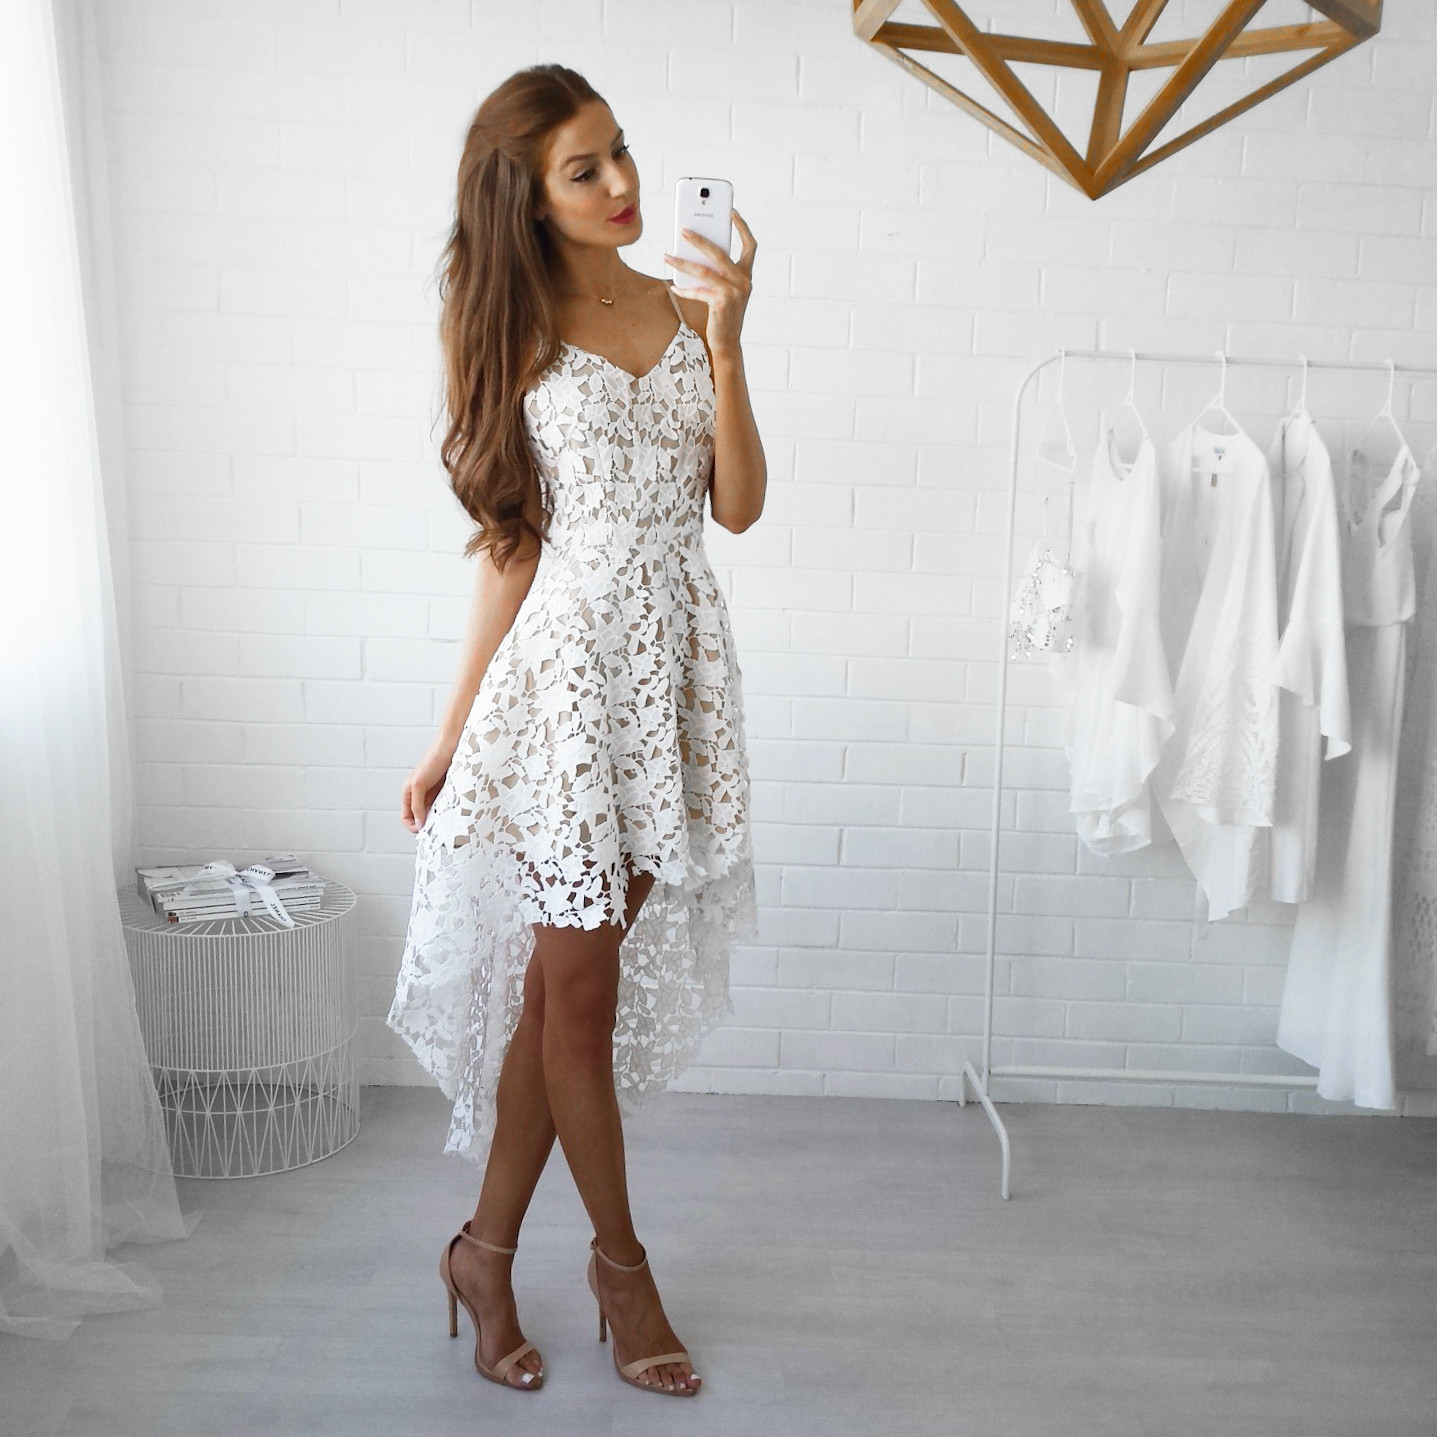 Women Summer Sleeveless Evening Party Cocktail Short Mini Lace Dress